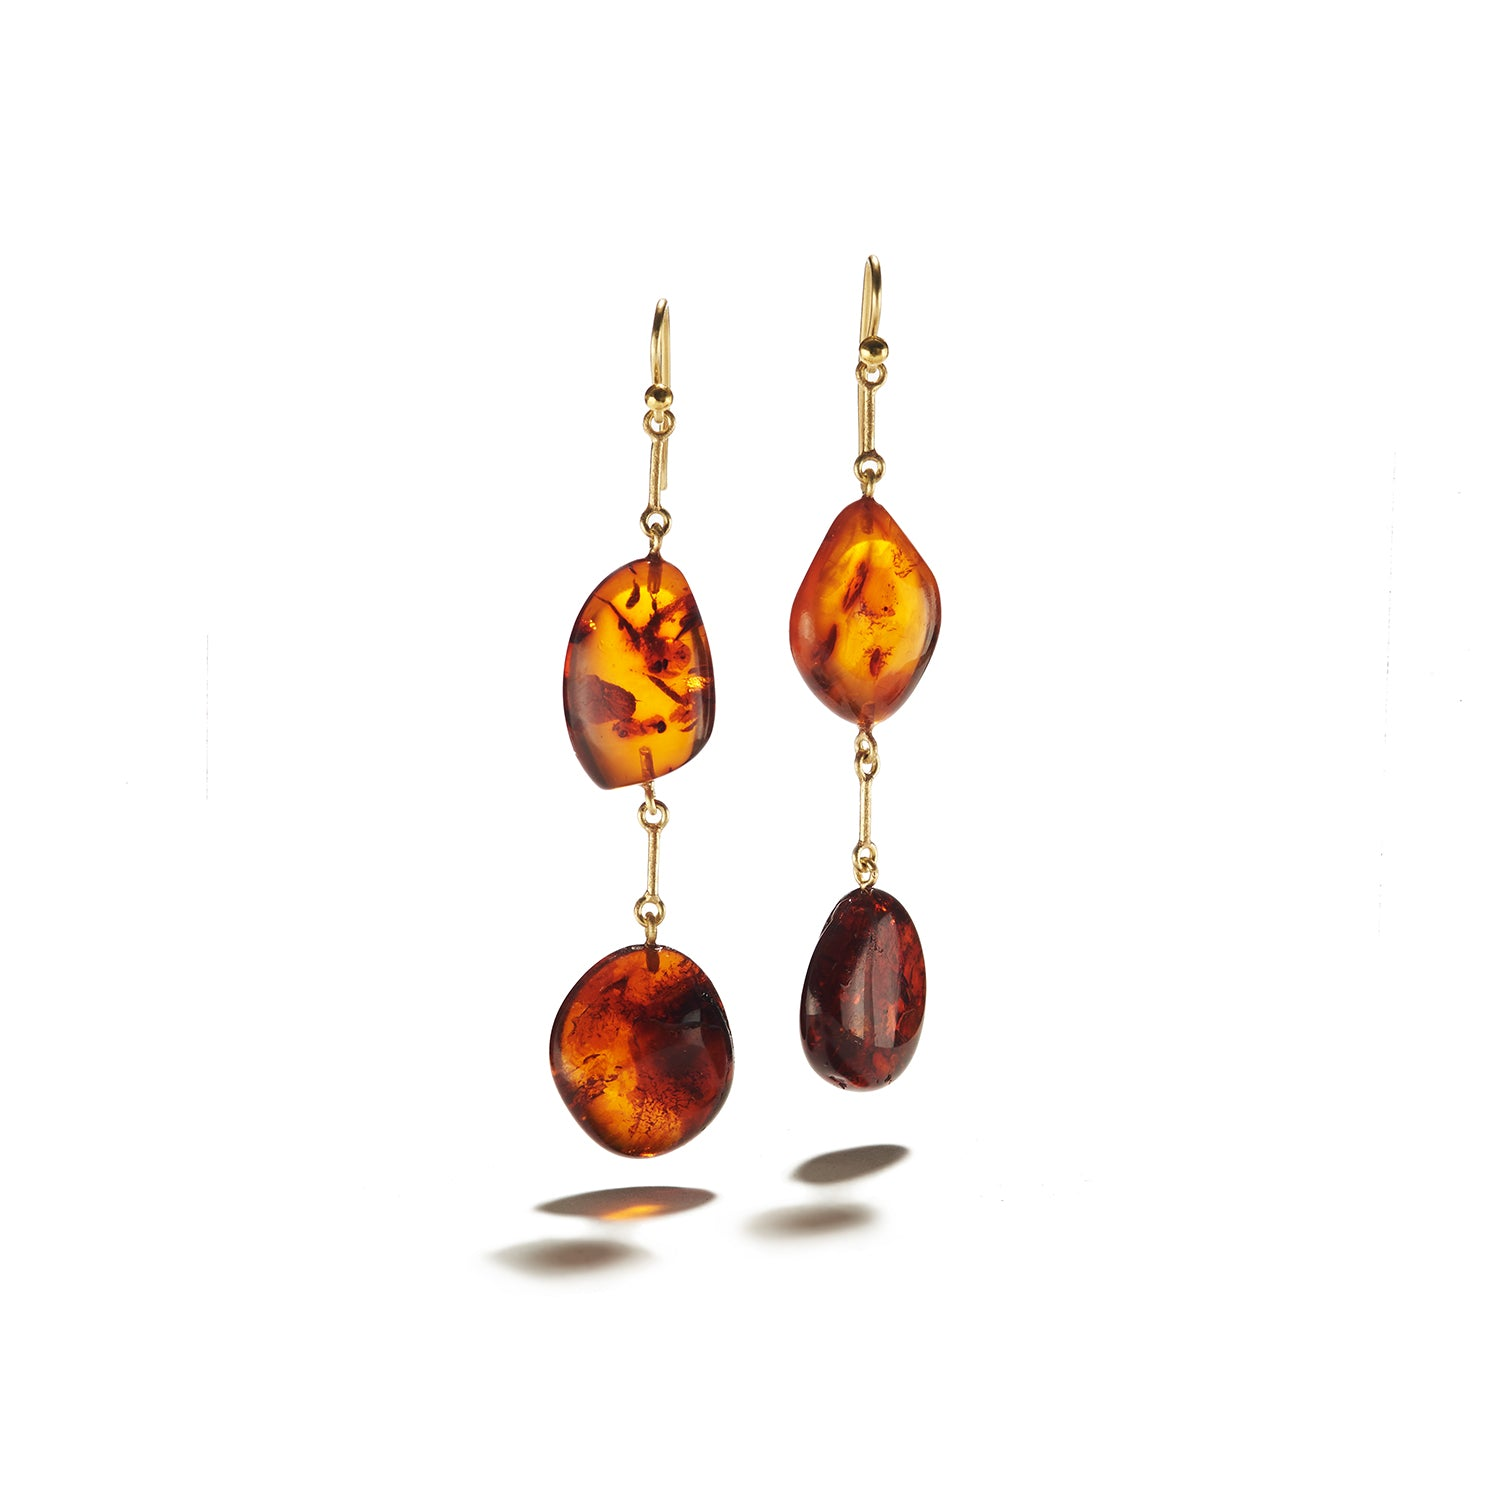 Cognac Amber Pebbles on French Wire Earrings